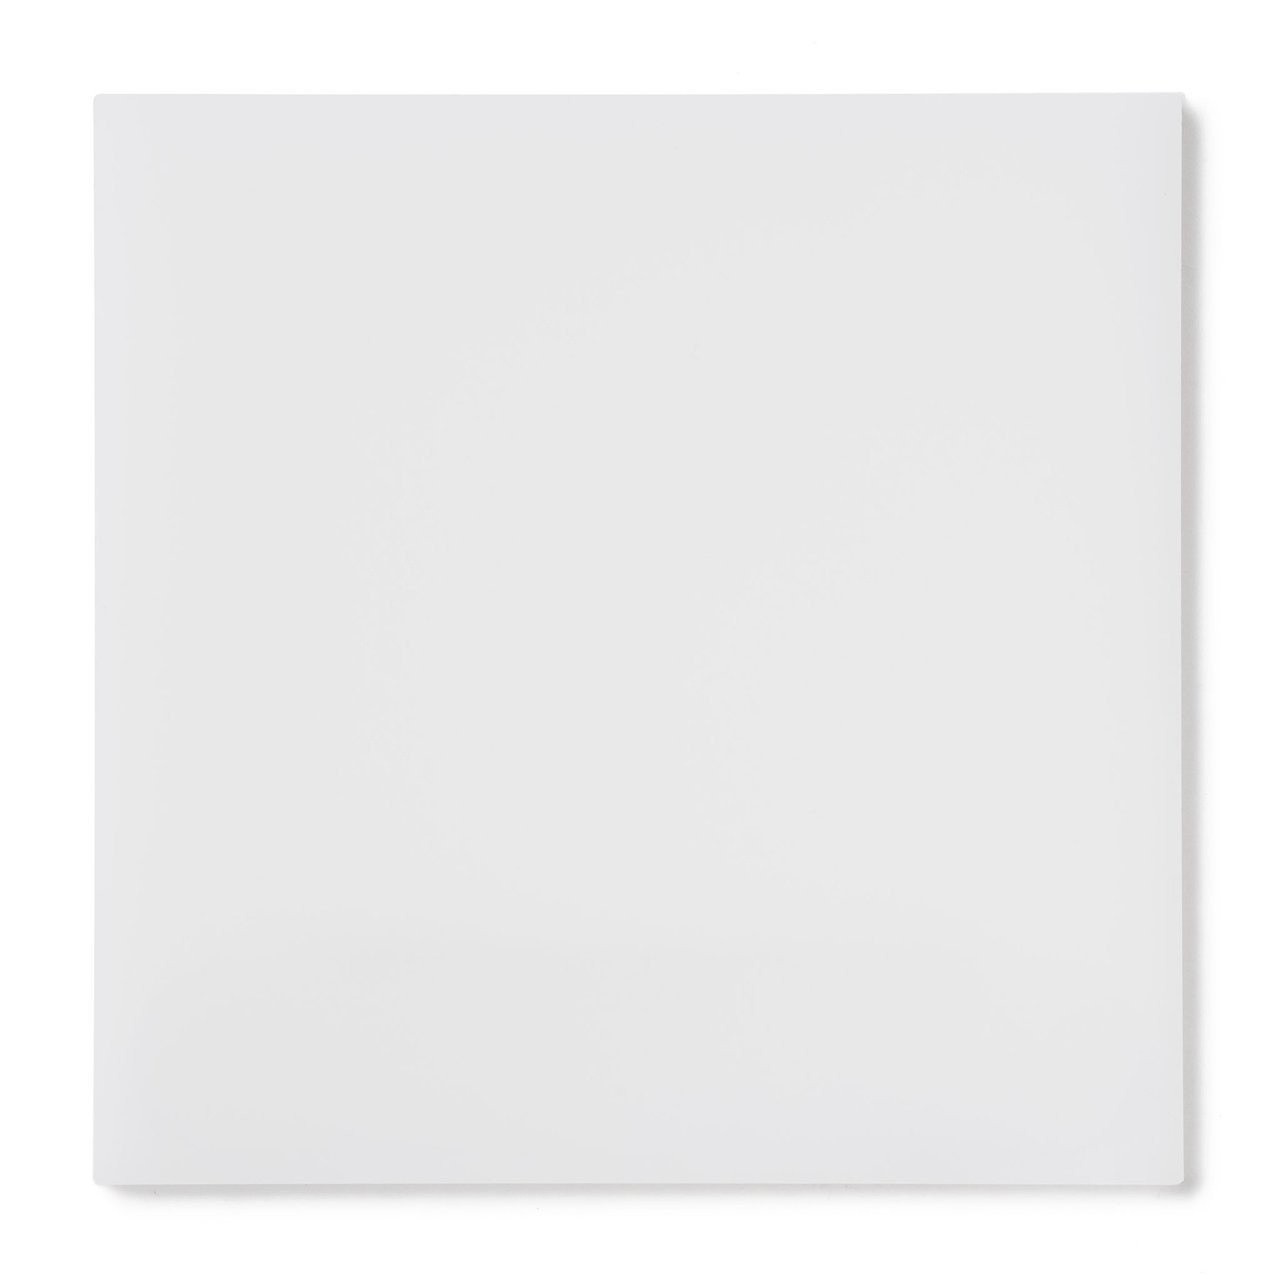 "4' x 8' x  1/4"" Translucent White Acrylic Sheet, P95 ( 1 side matte )"